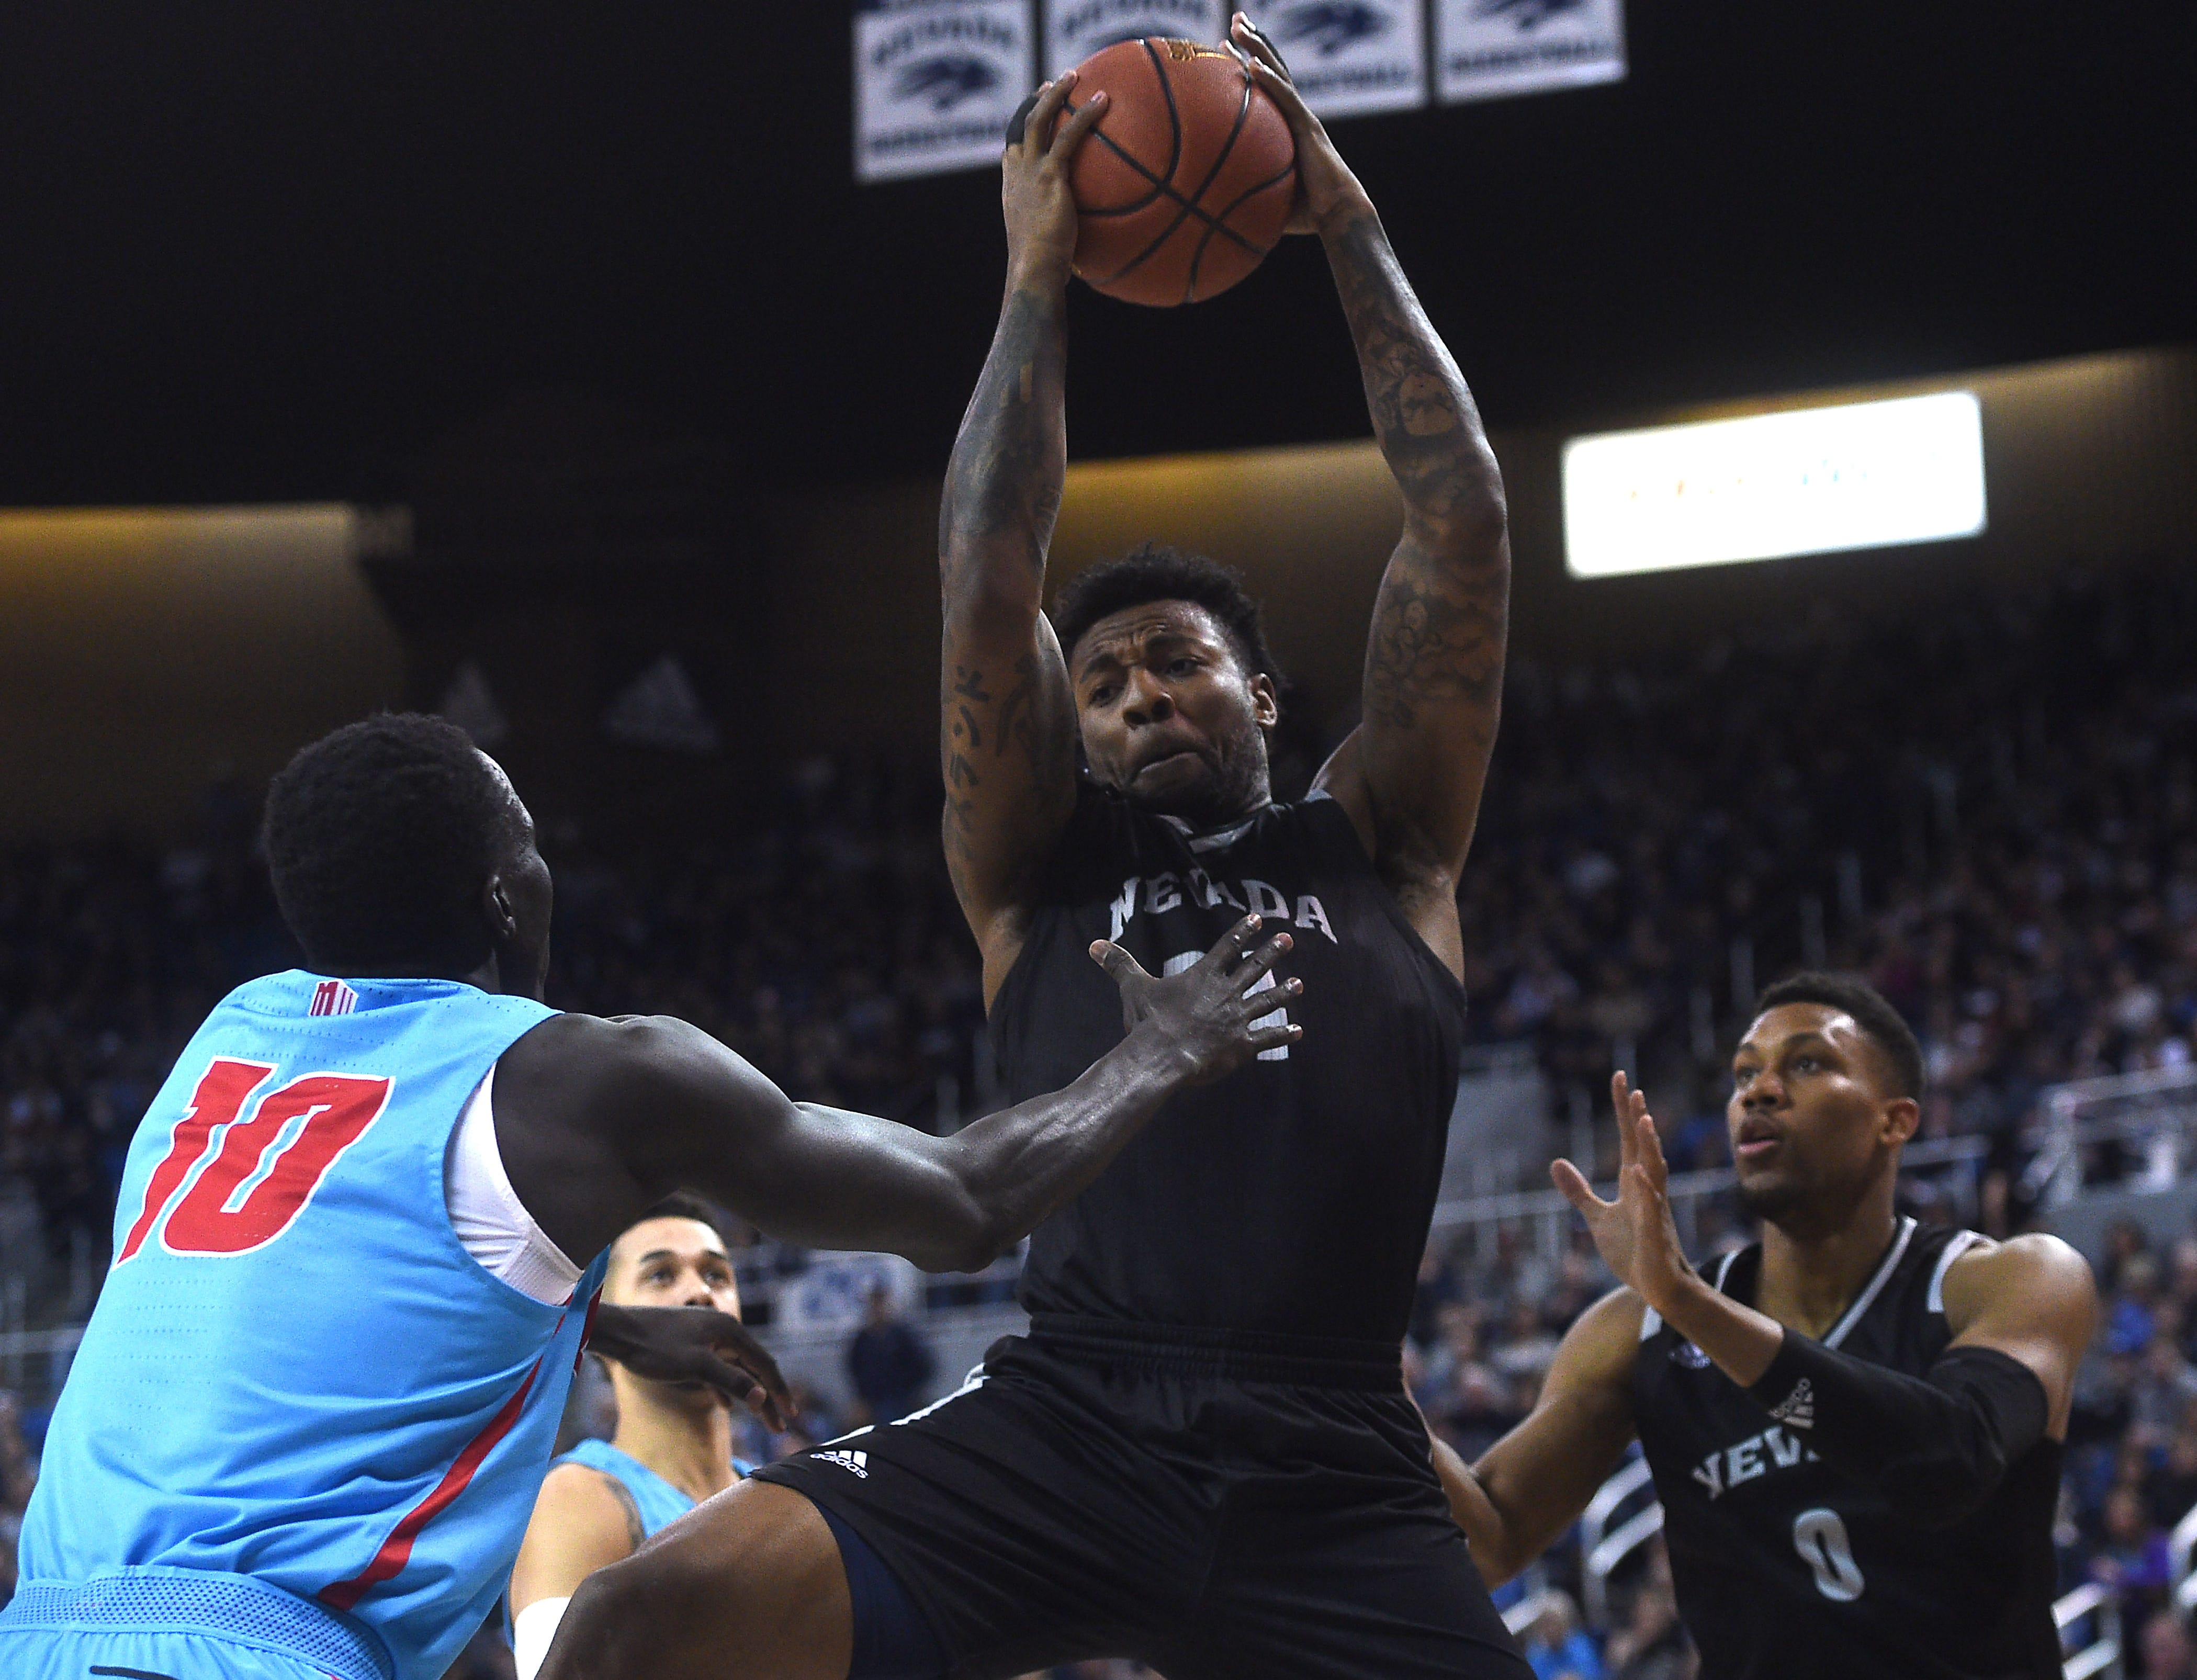 Nevada's Jordan Caroline grabs a rebound while taking on New Mexico at Lawlor Events Center in Reno on Feb. 9, 2019.